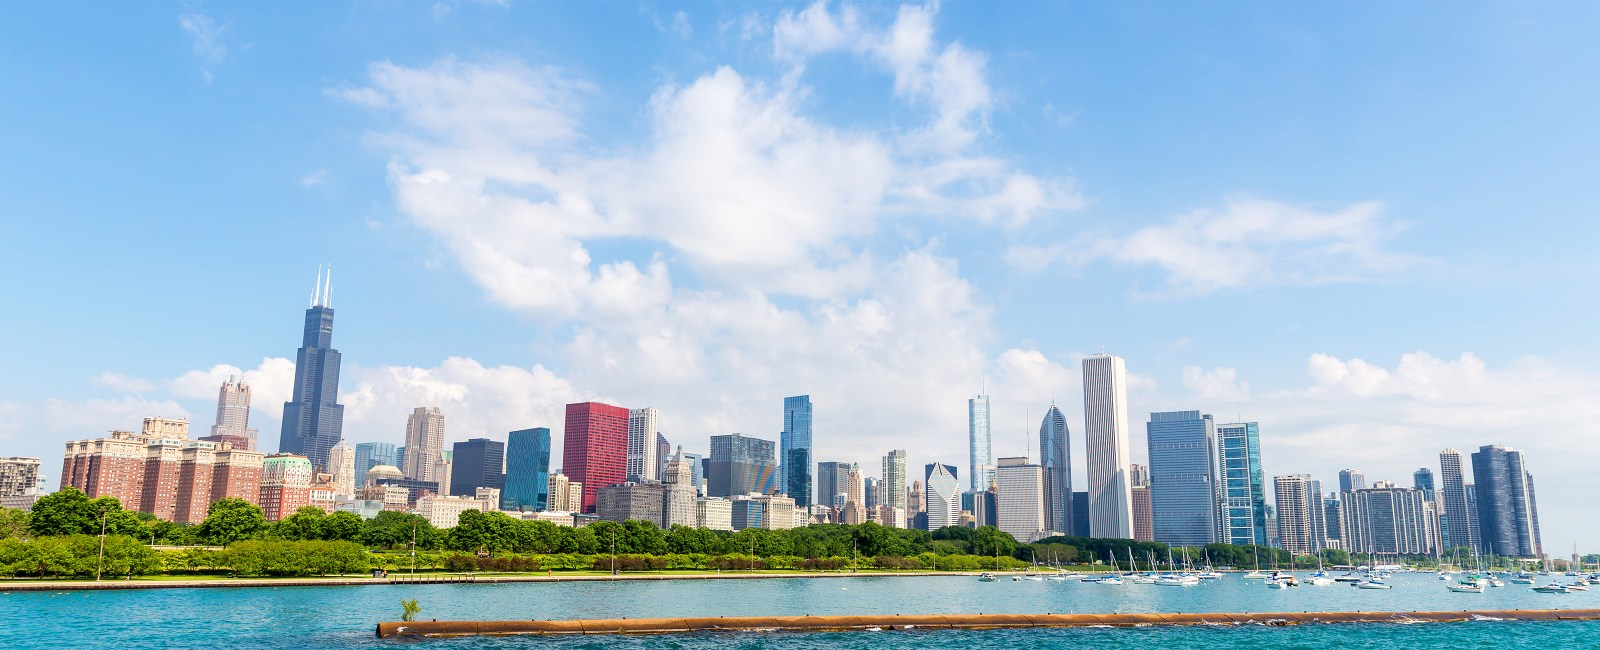 View of the Chicago skyline from across the lake